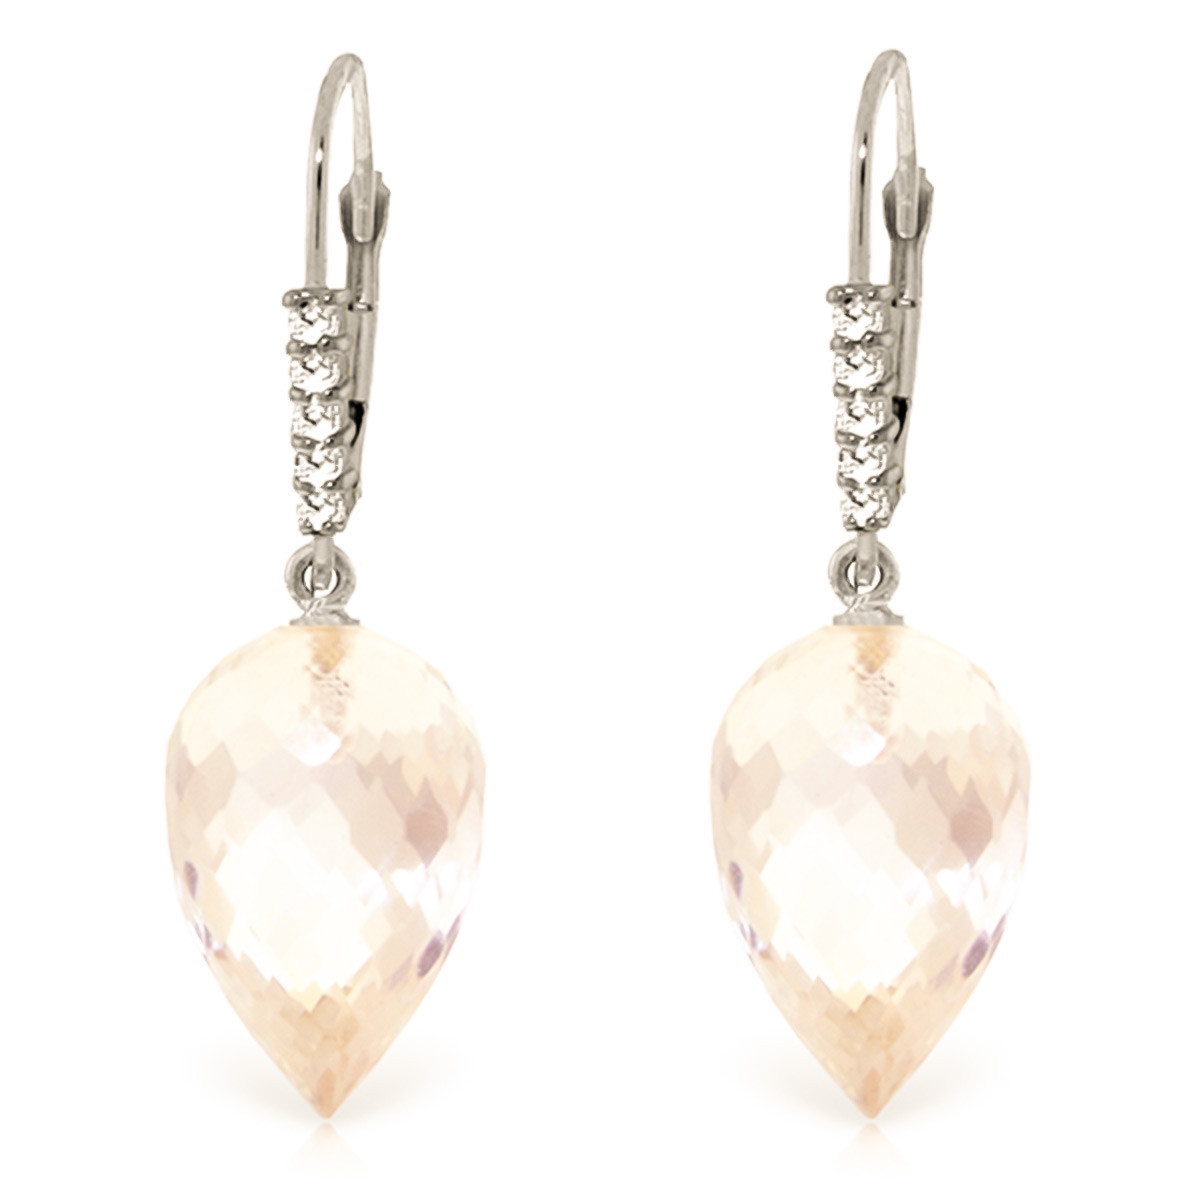 White Topaz Drop Earrings 24.65 ctw in 9ct White Gold